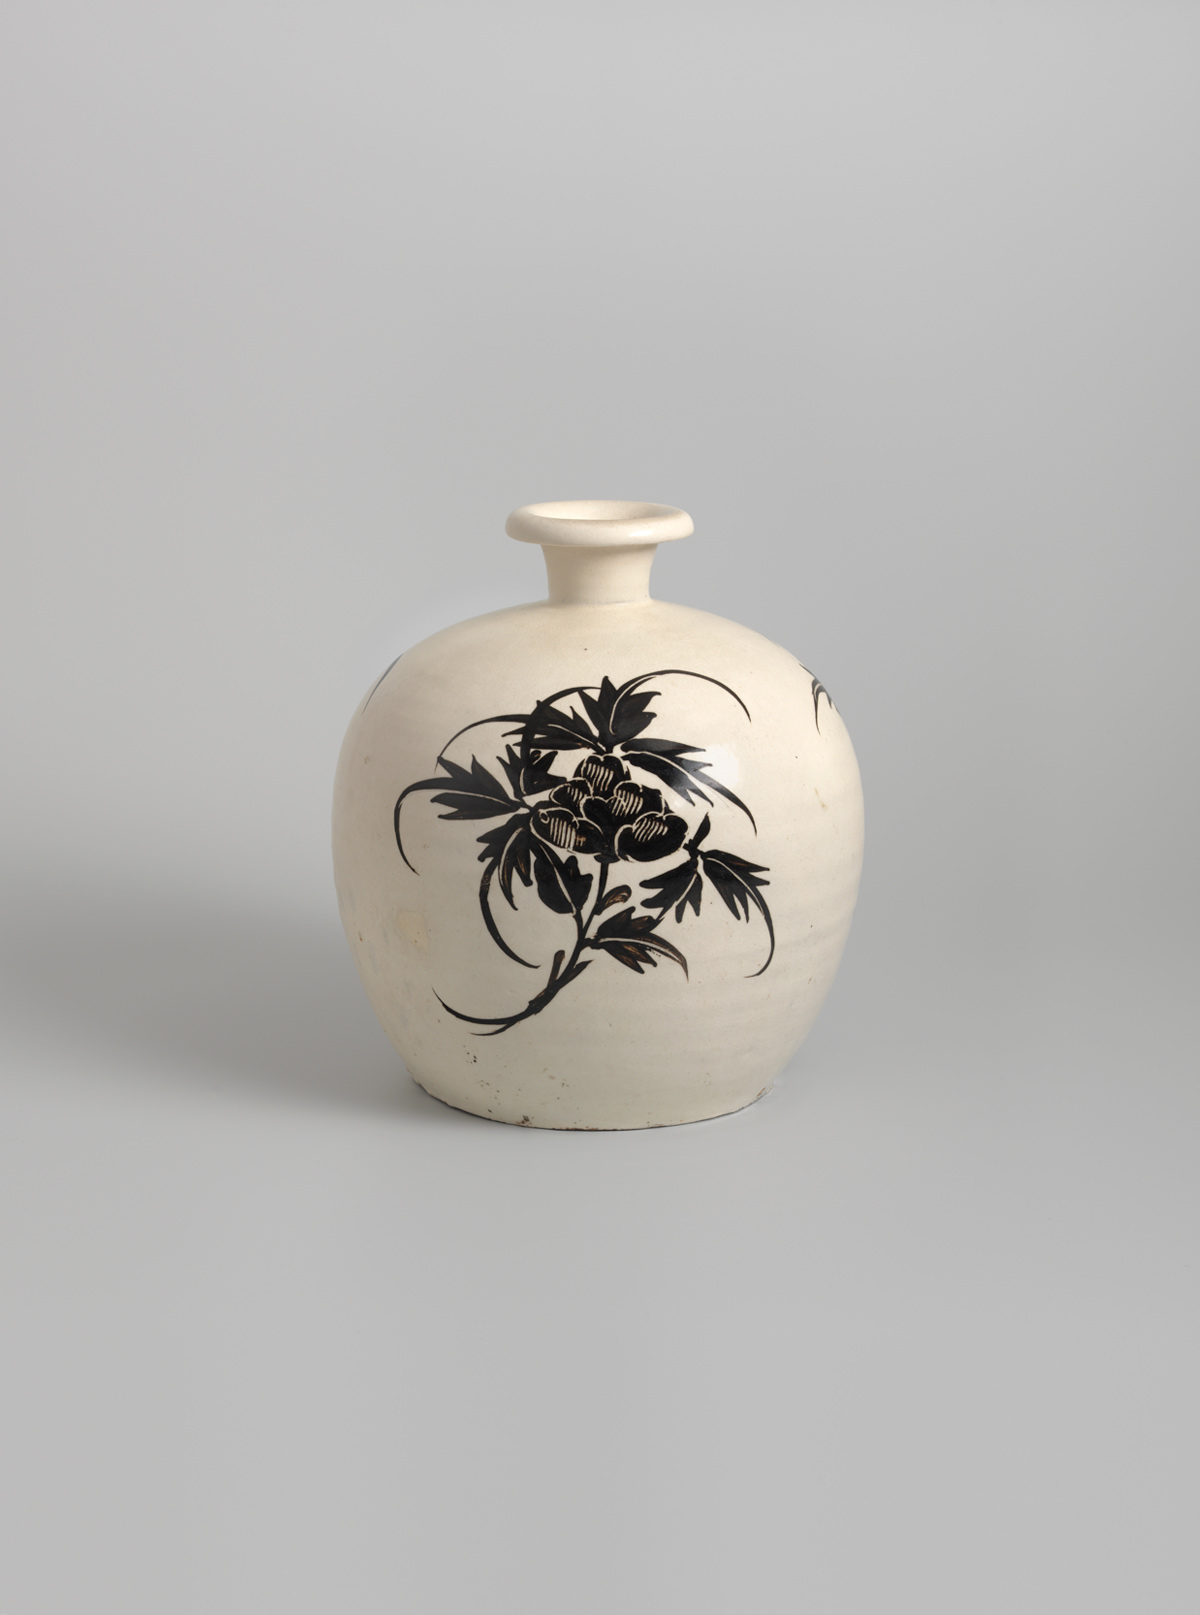 Glazed stoneware truncated vase (xiaokouping)